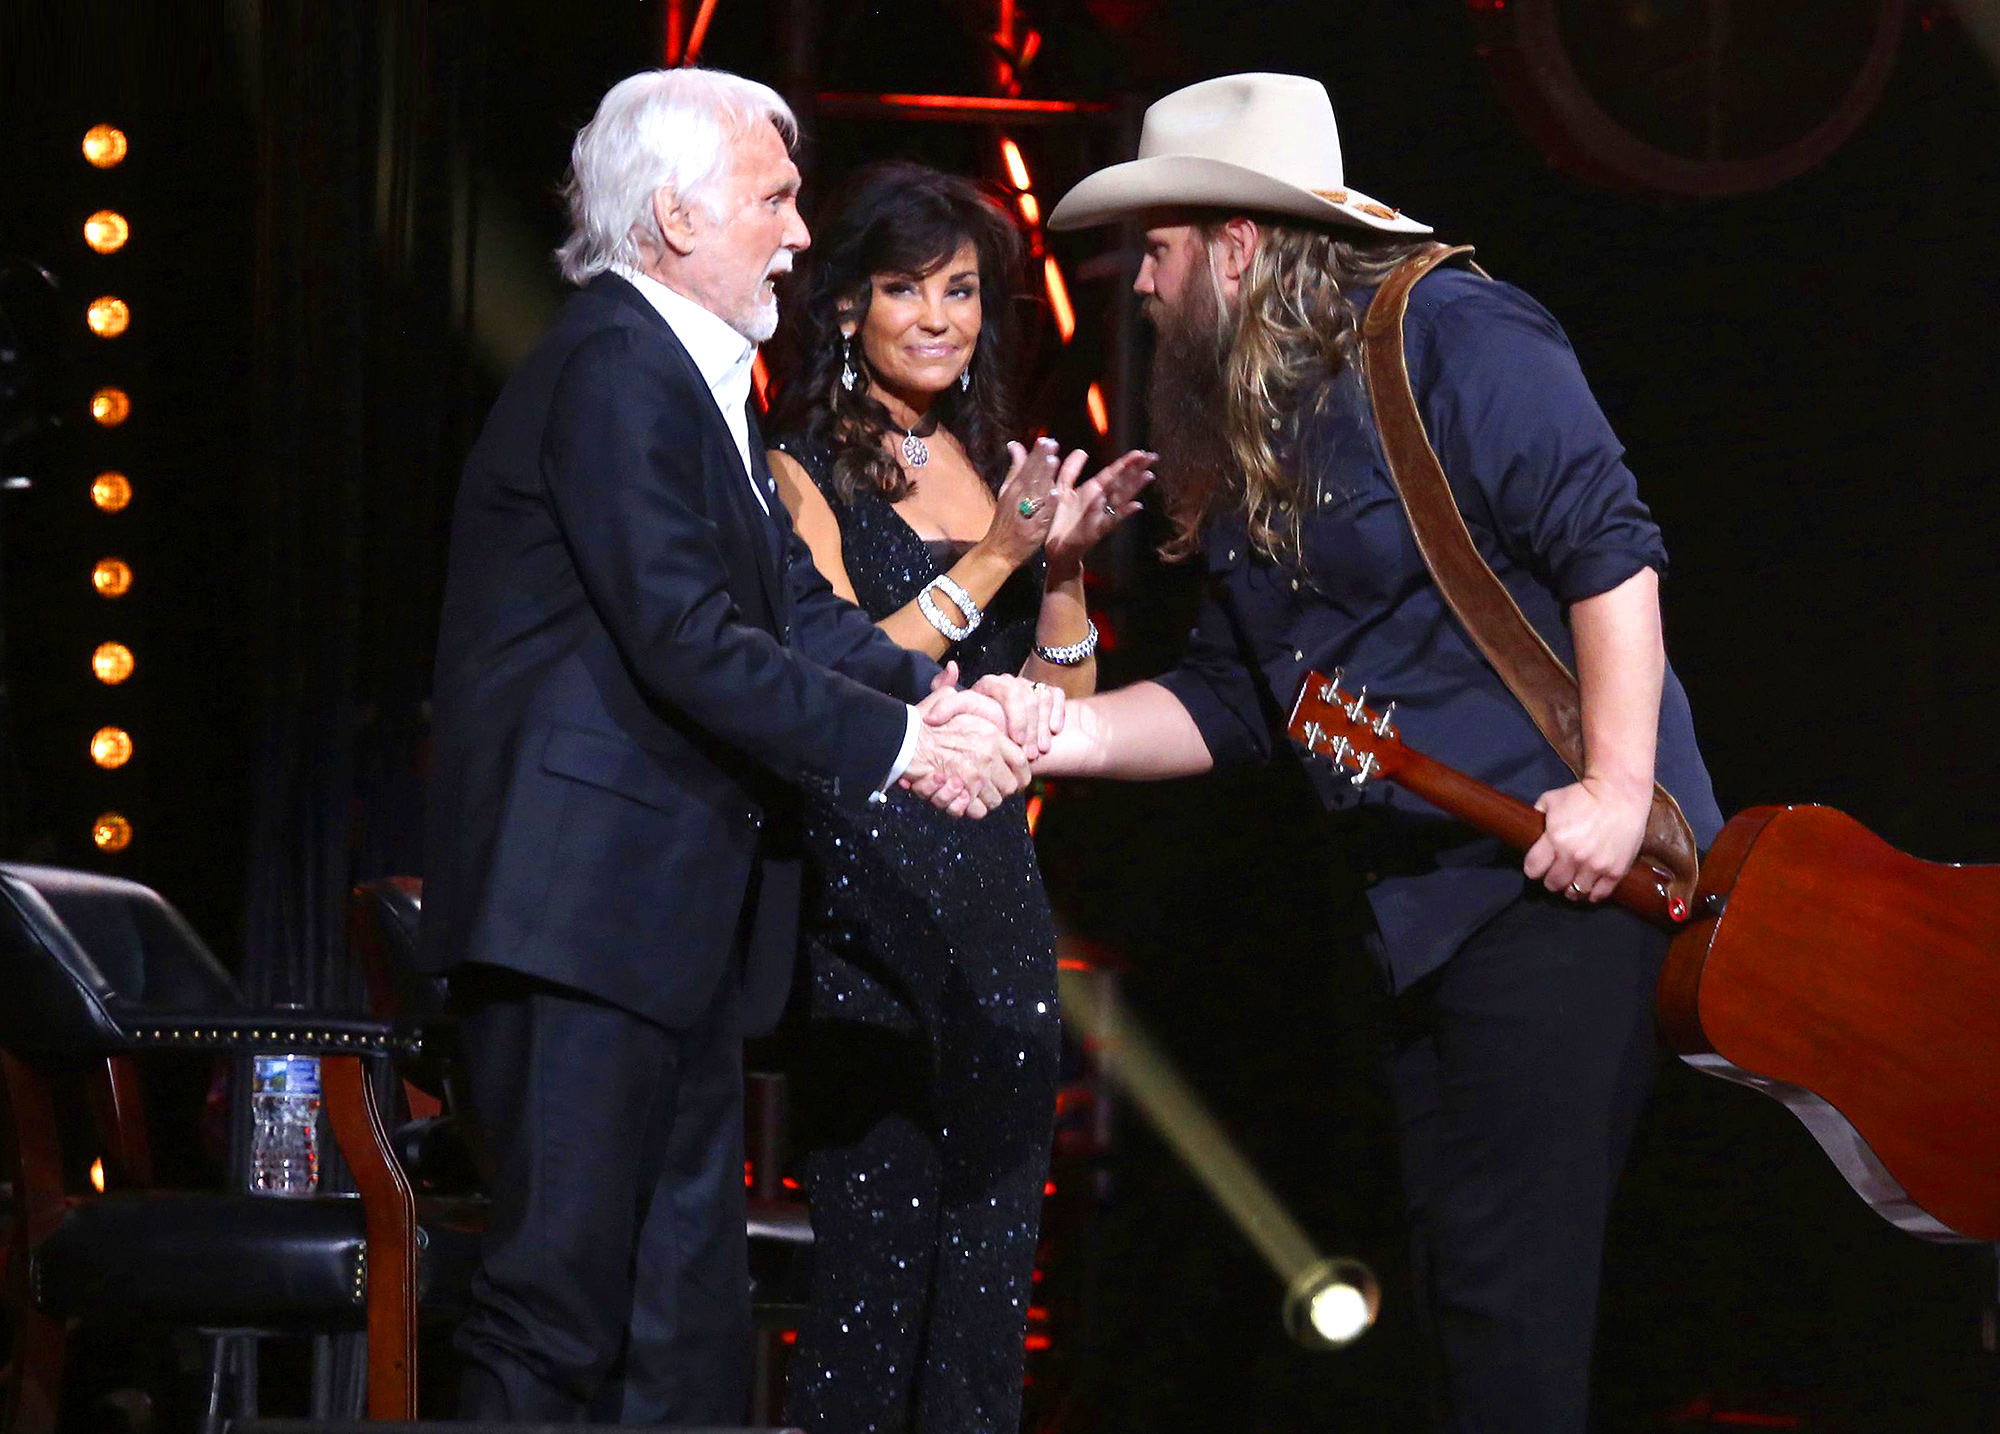 All In for the Gambler: Kenny Rogers' Farewell Concert Celebrati, Nashville, USA - 25 Oct 2017